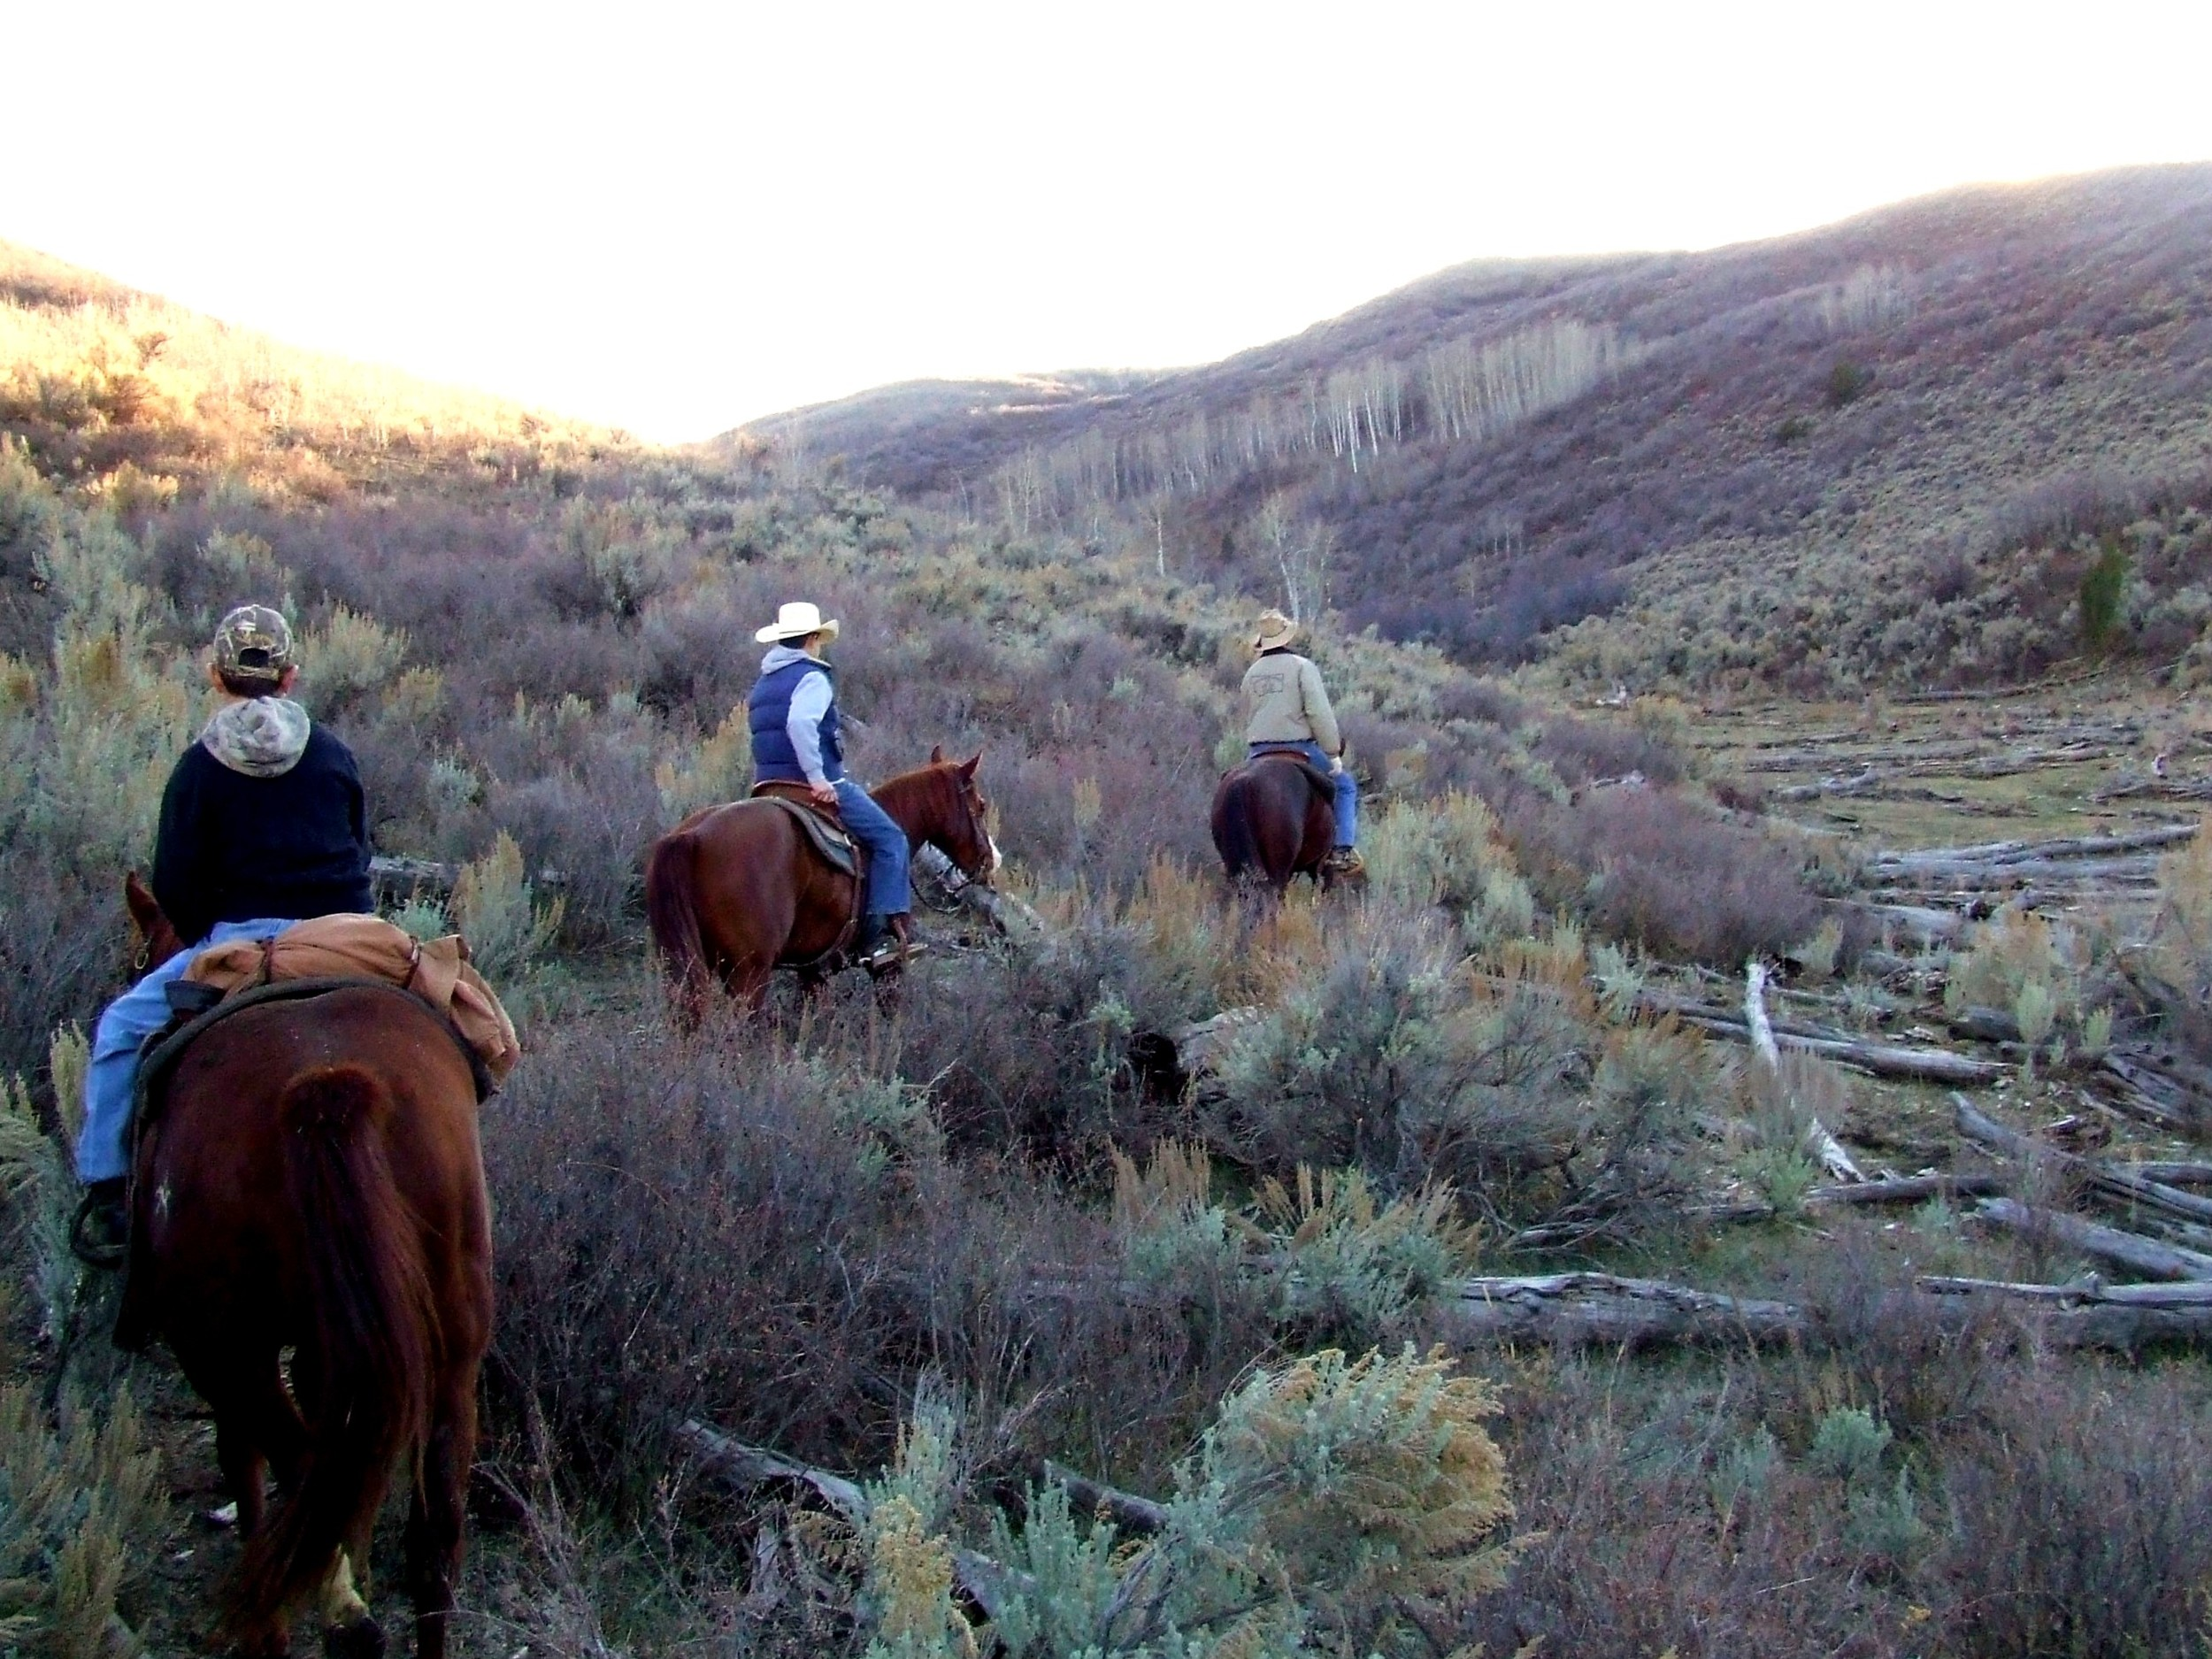 e and d and dad on trail ride.jpg